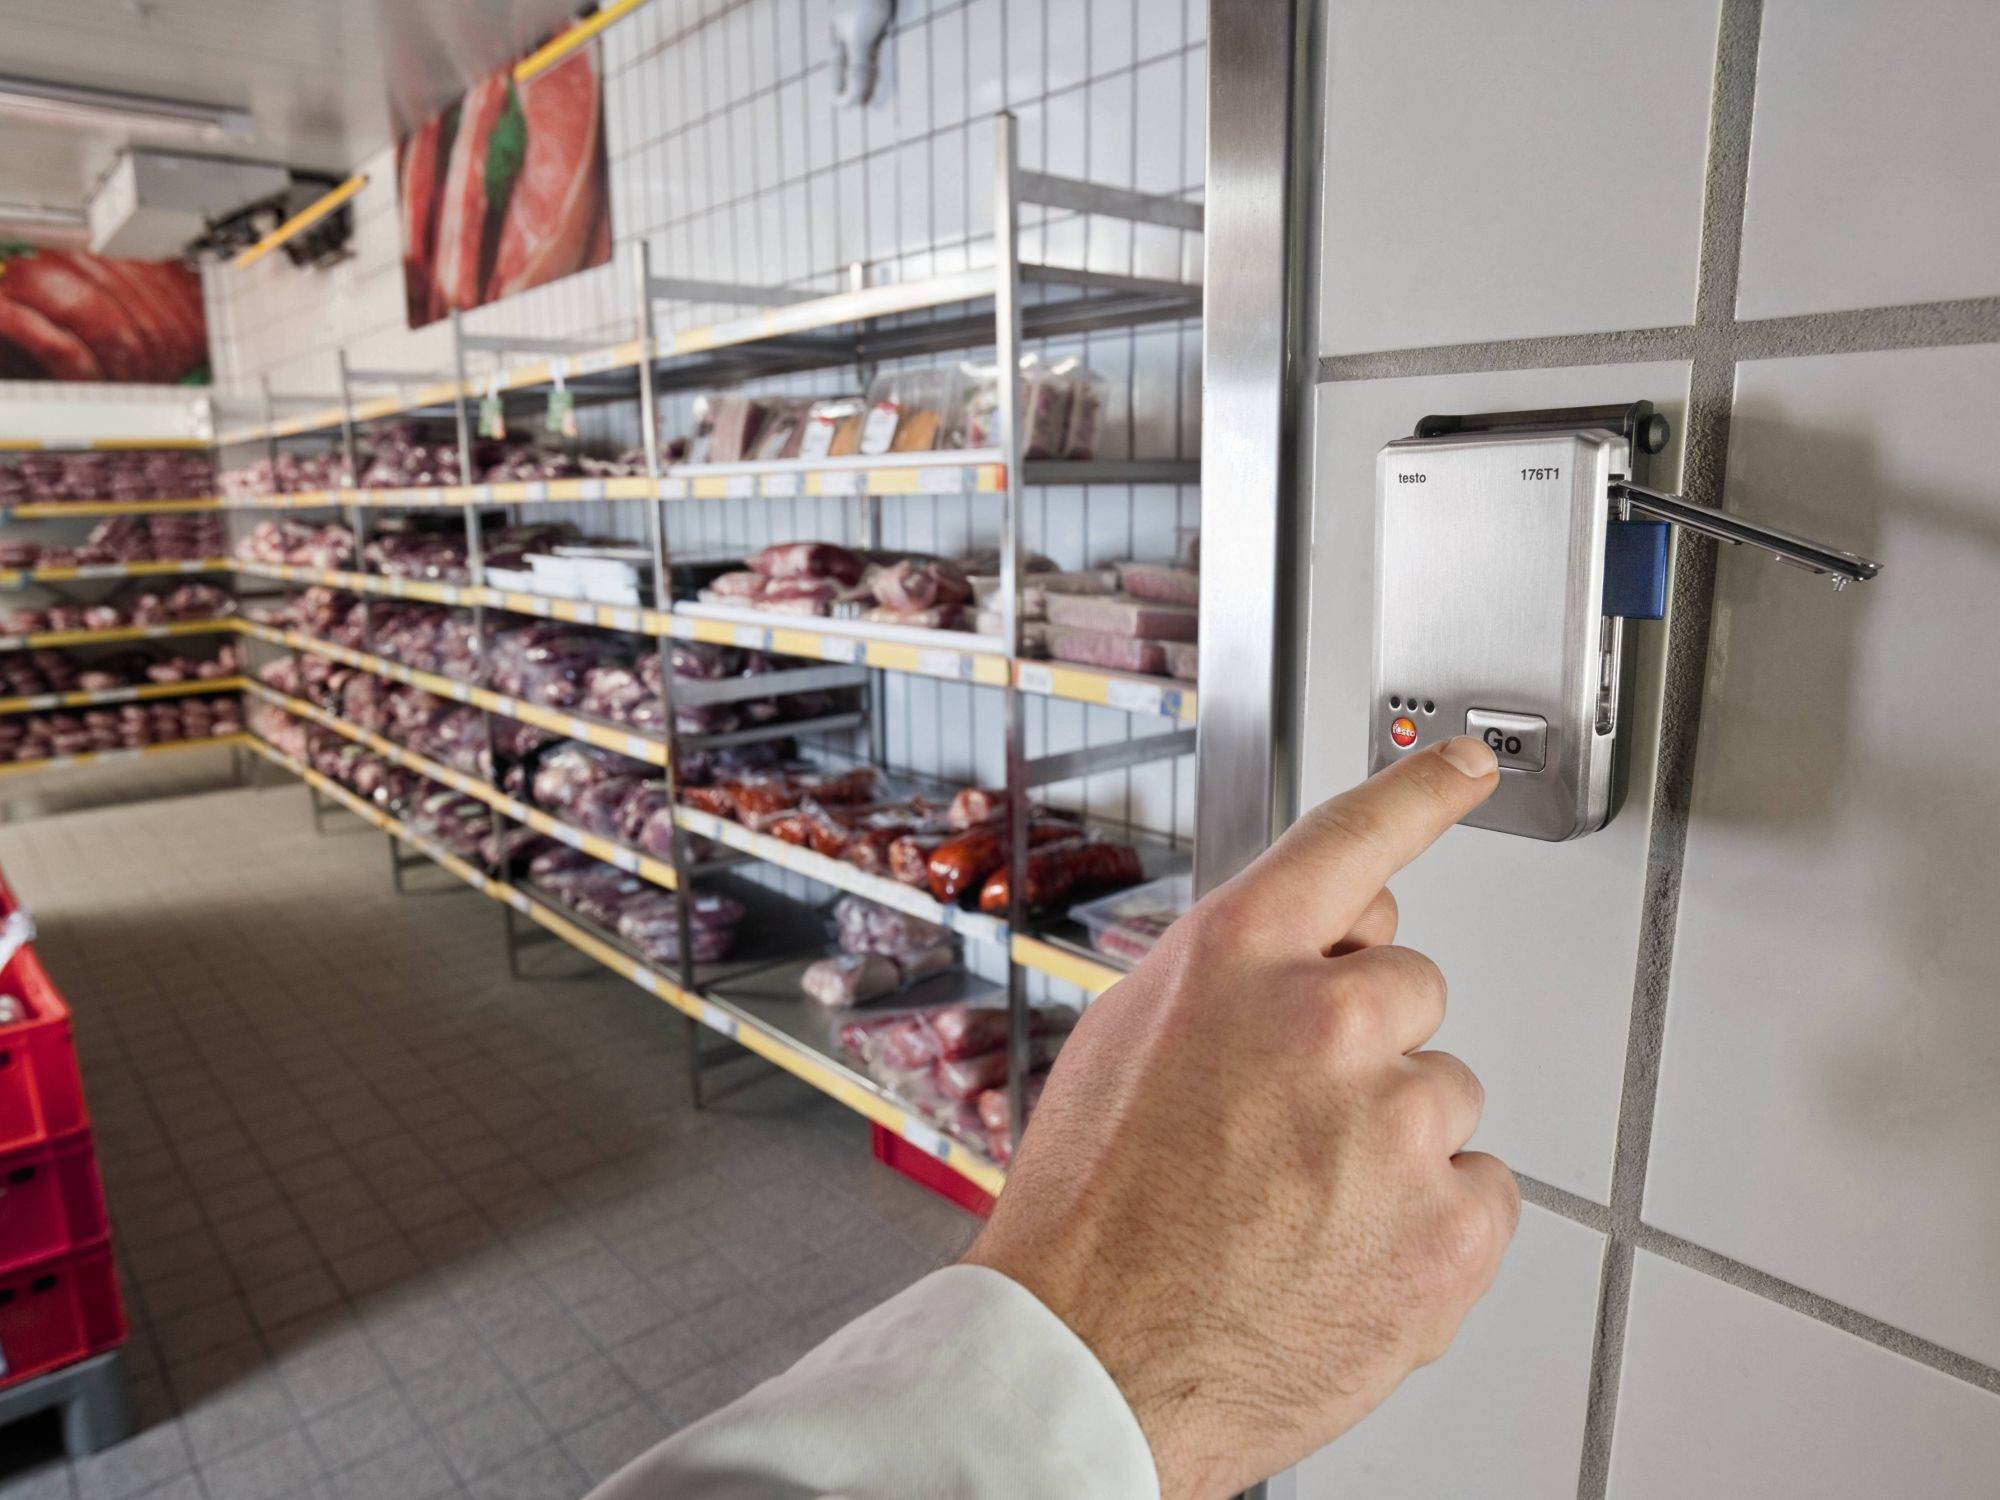 Food monitoring in storerooms